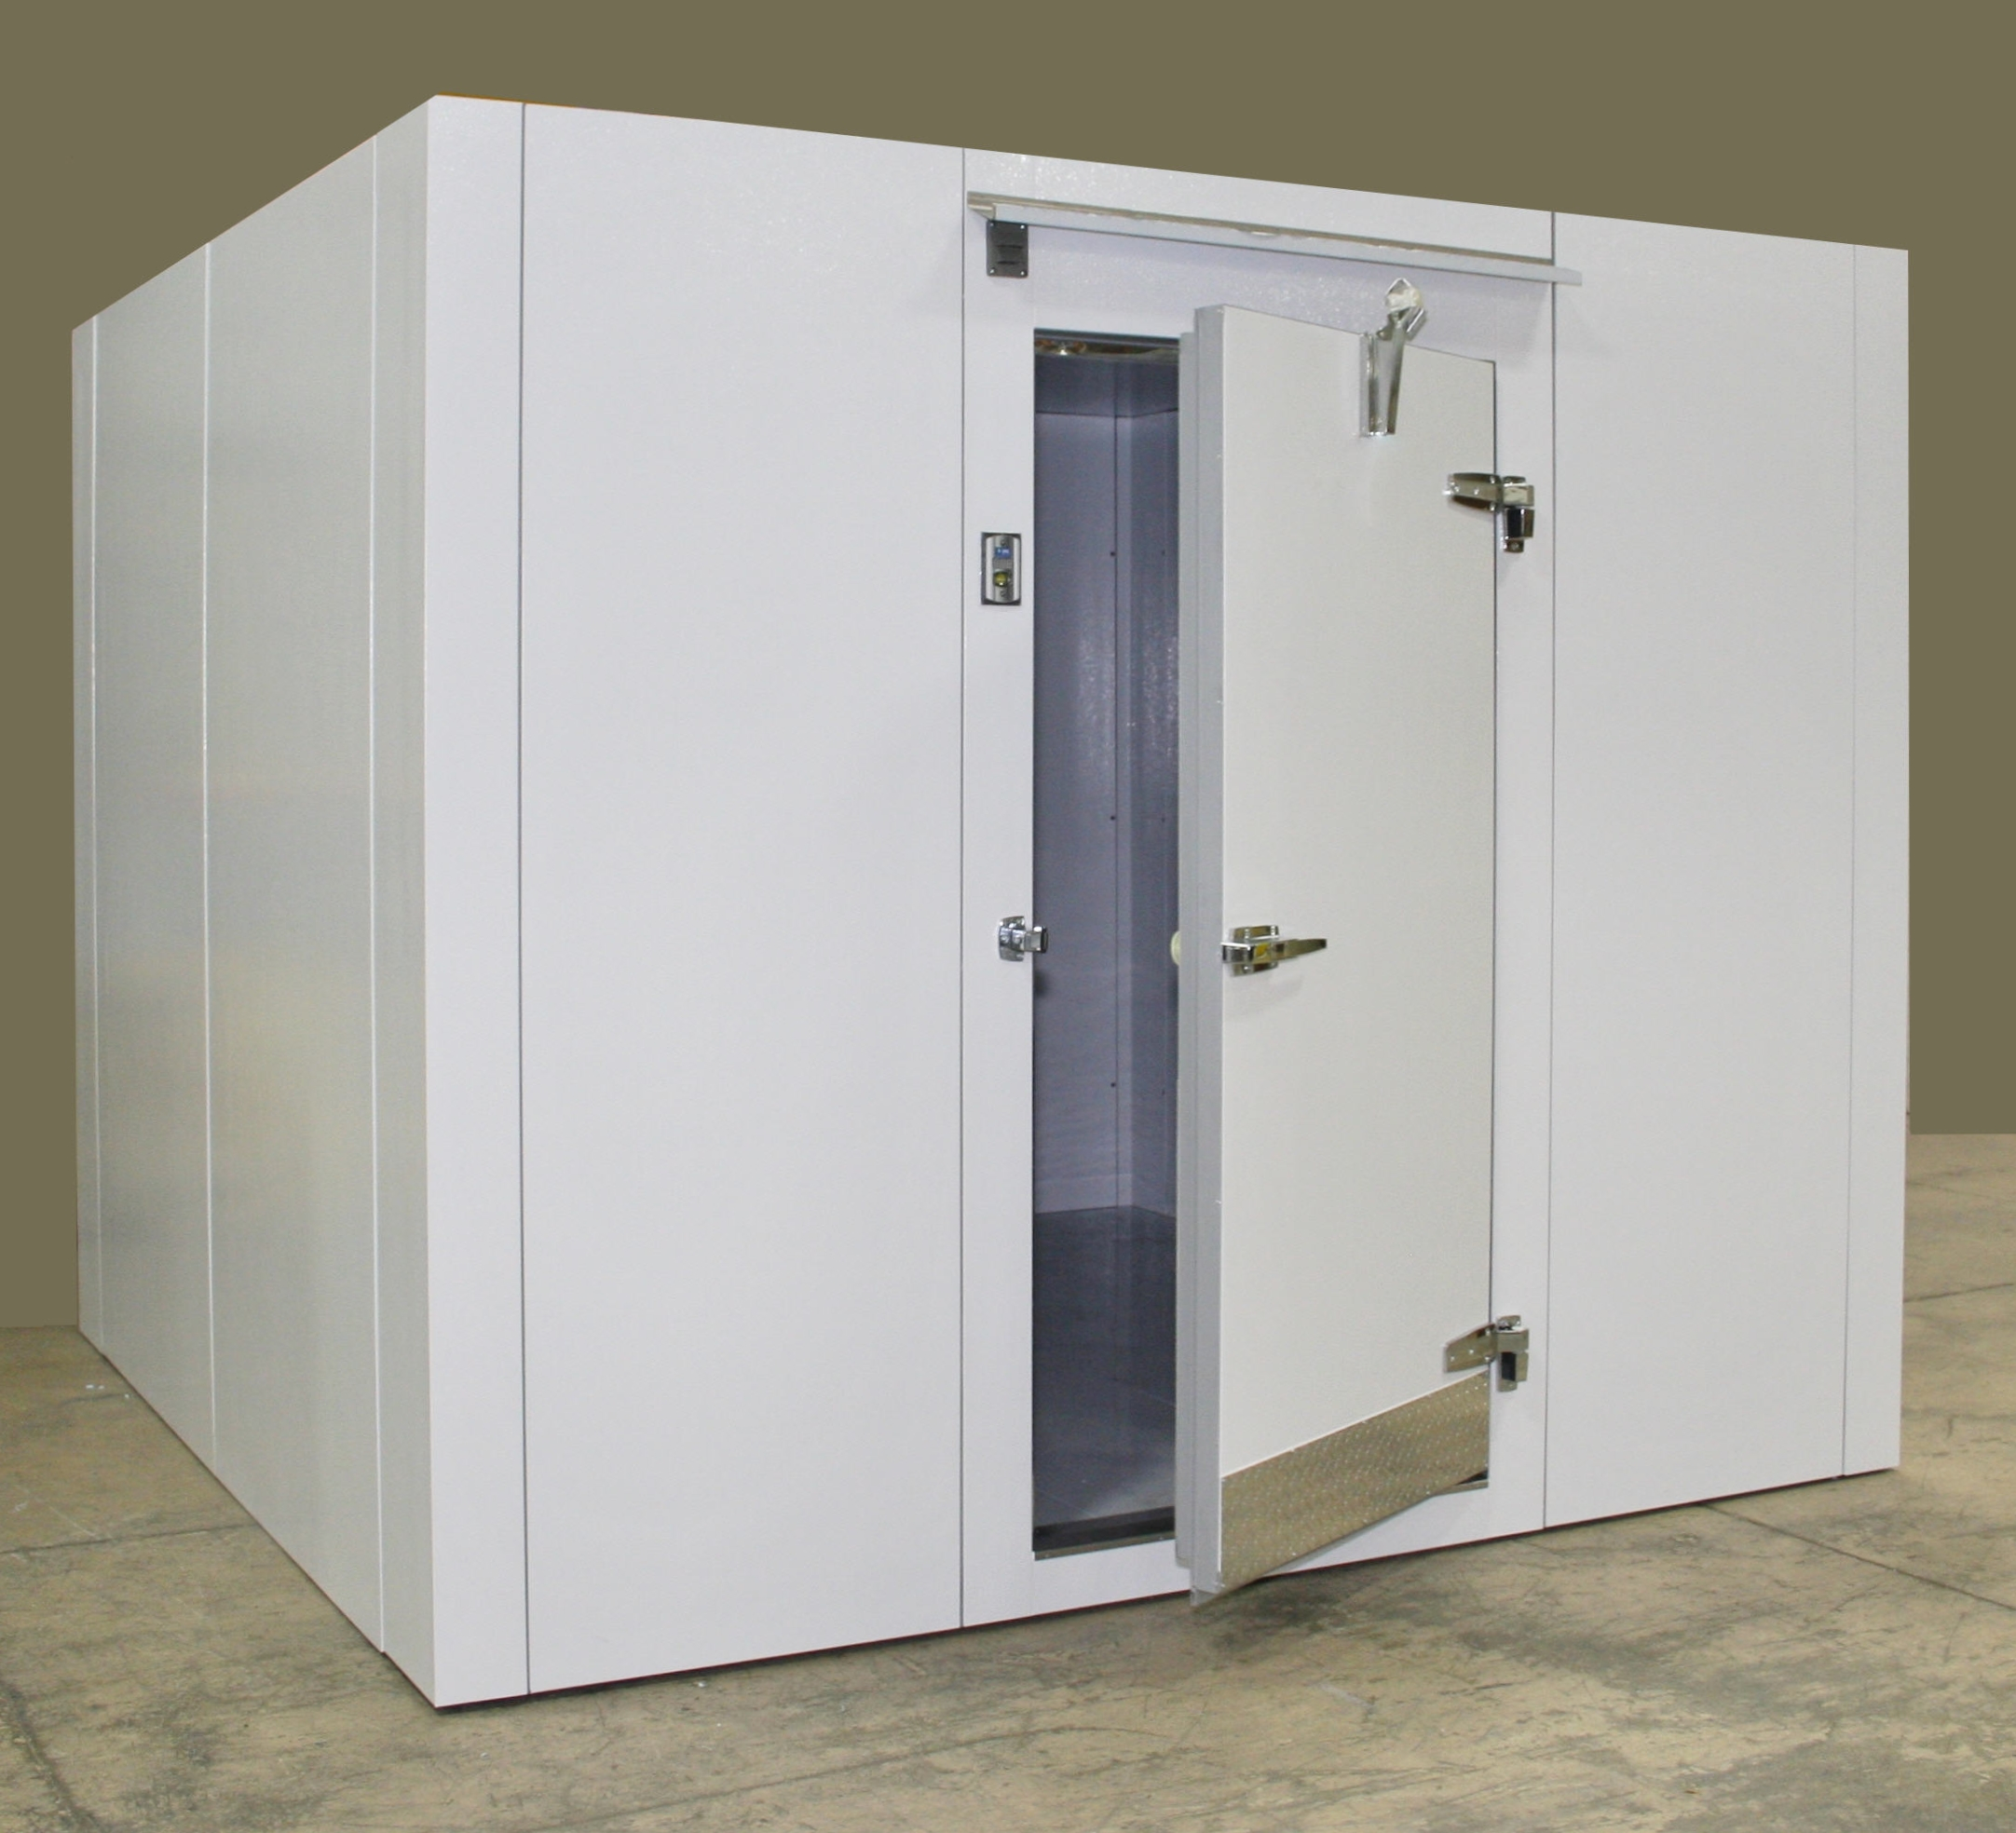 Lauro Equipment Custom Walk In Freezer 6 X6 X7 With Floor